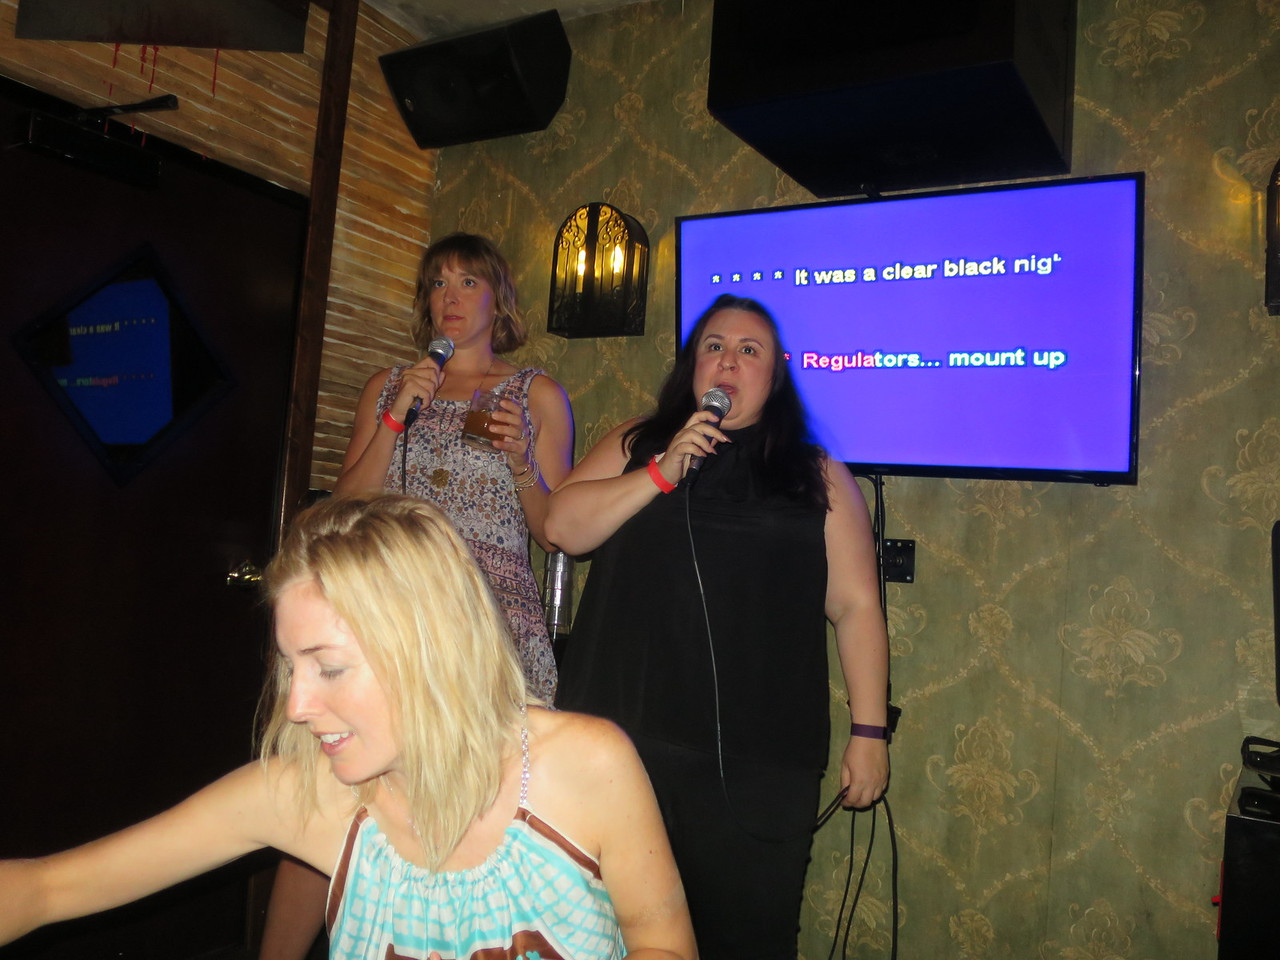 Deidre and Olivia get their Warren G and Nate Dogg on